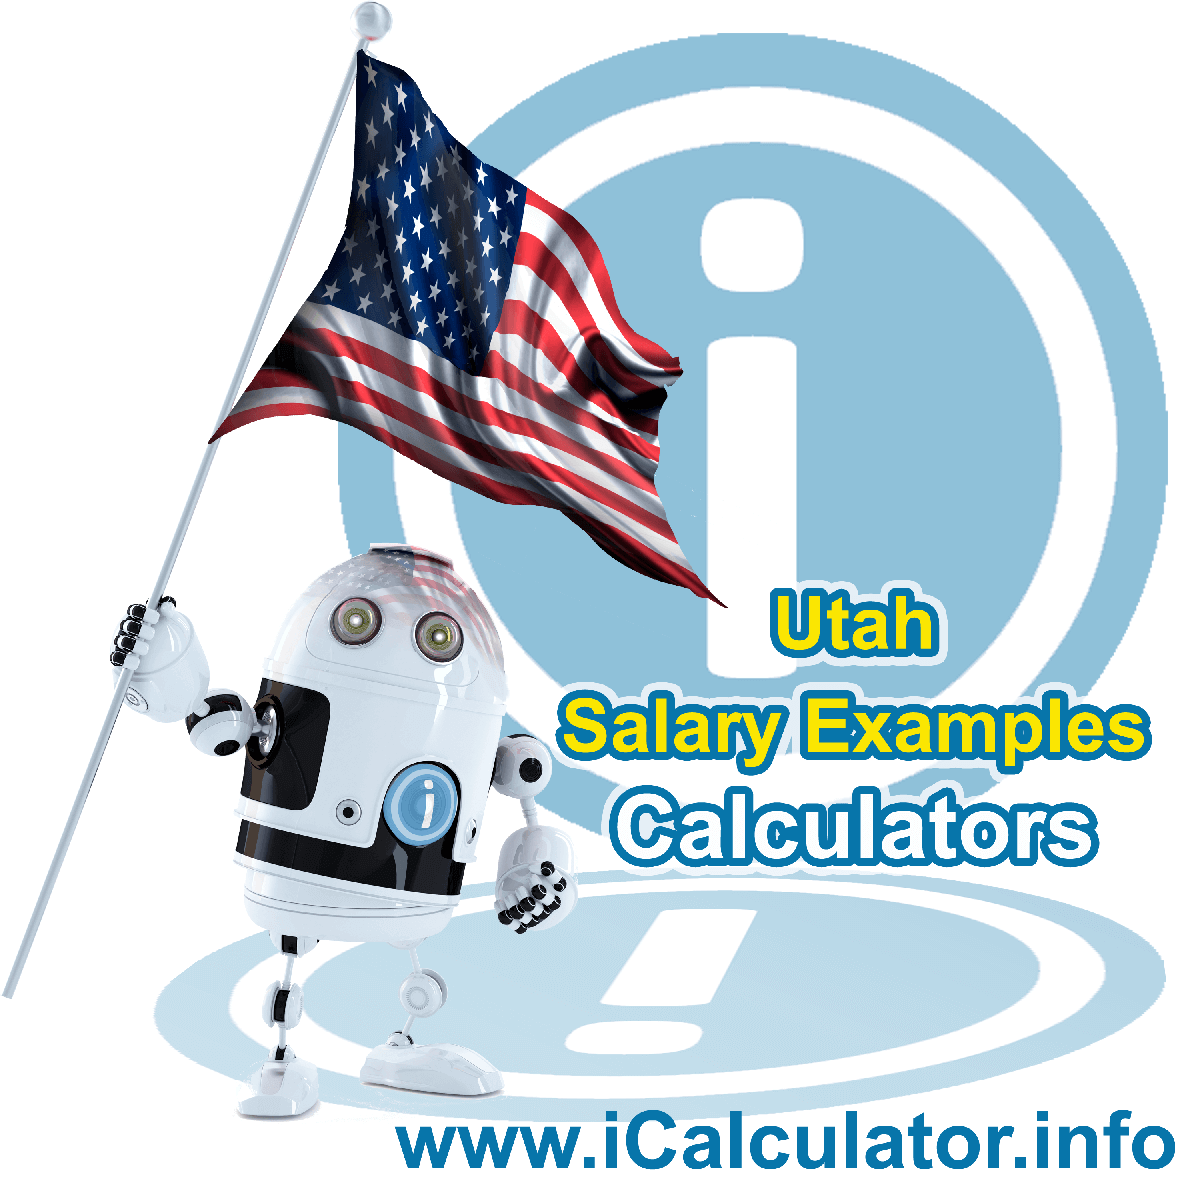 Utah Salary Example for $200,000.00 in 2020 | iCalculator | $200,000.00 salary example for employee and employer paying Utah State tincome taxes. Detailed salary after tax calculation including Utah State Tax, Federal State Tax, Medicare Deductions, Social Security, Capital Gains and other income tax and salary deductions complete with supporting Utah state tax tables